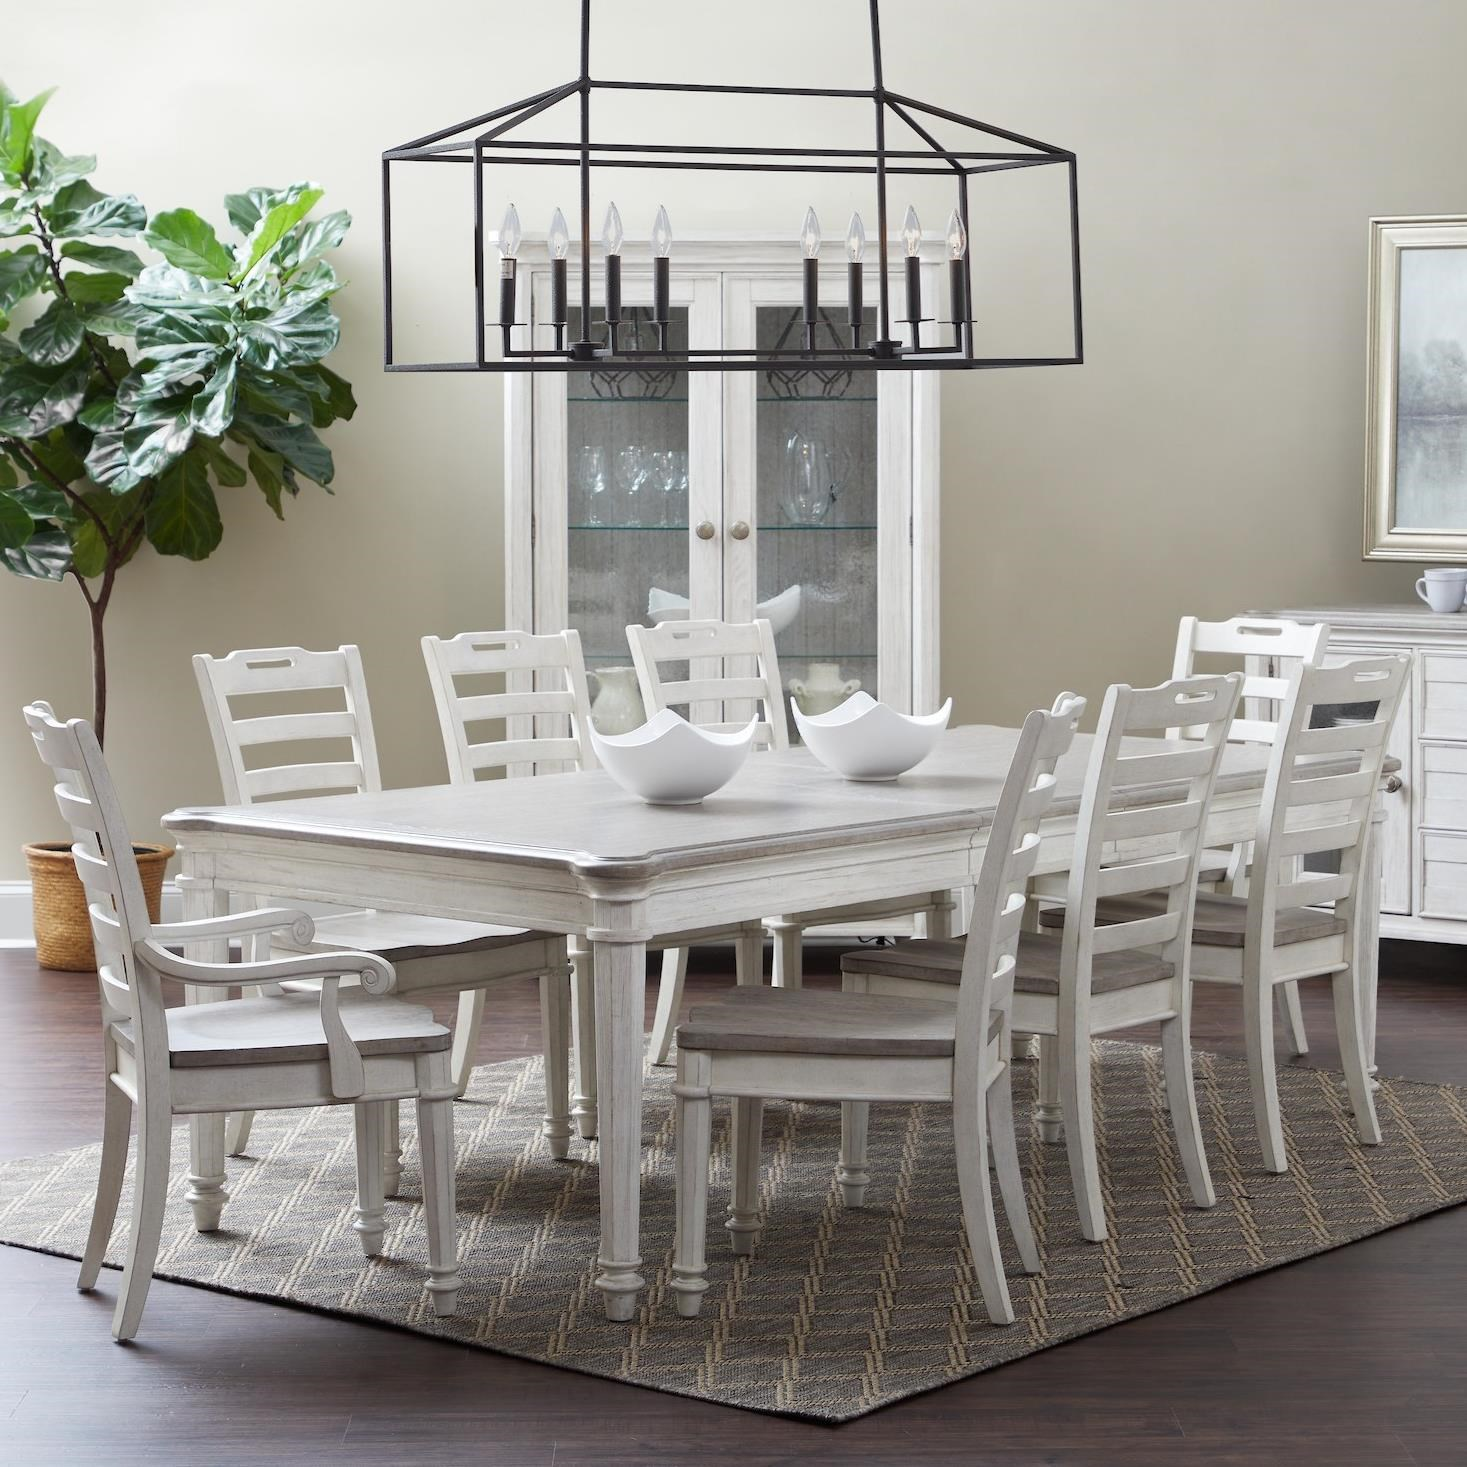 Maribelle 9-Piece Dining Set by Klaussner International at Northeast Factory Direct